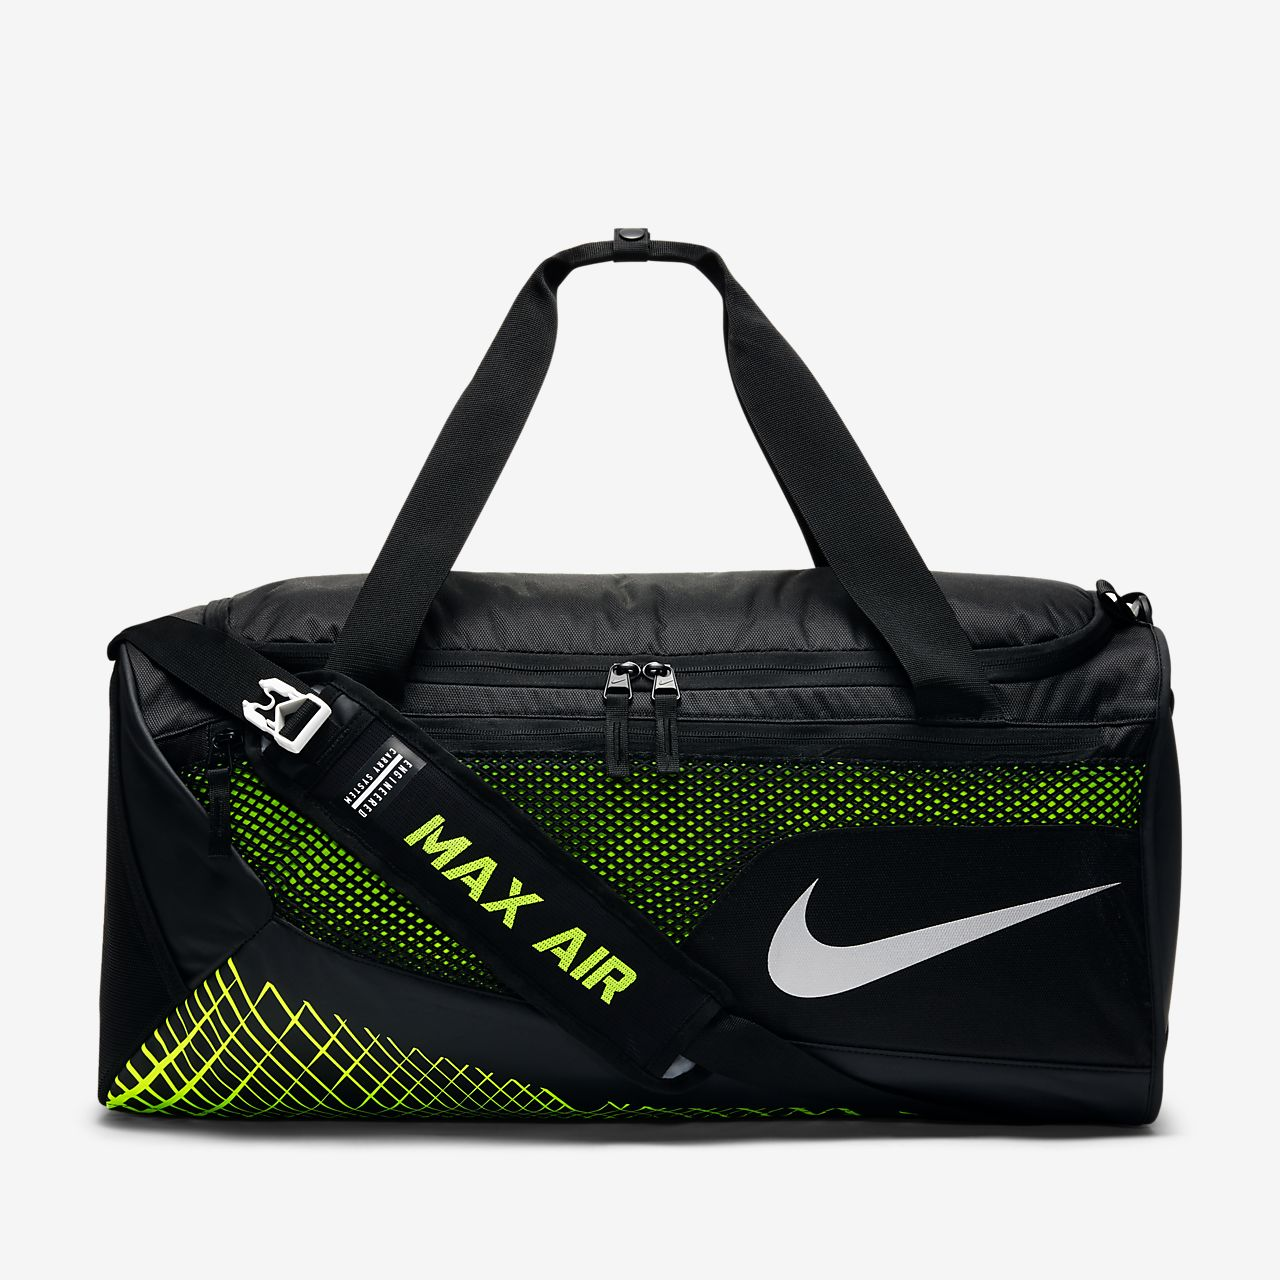 Nike Vapor Max Air Medium Training Duffel Bag